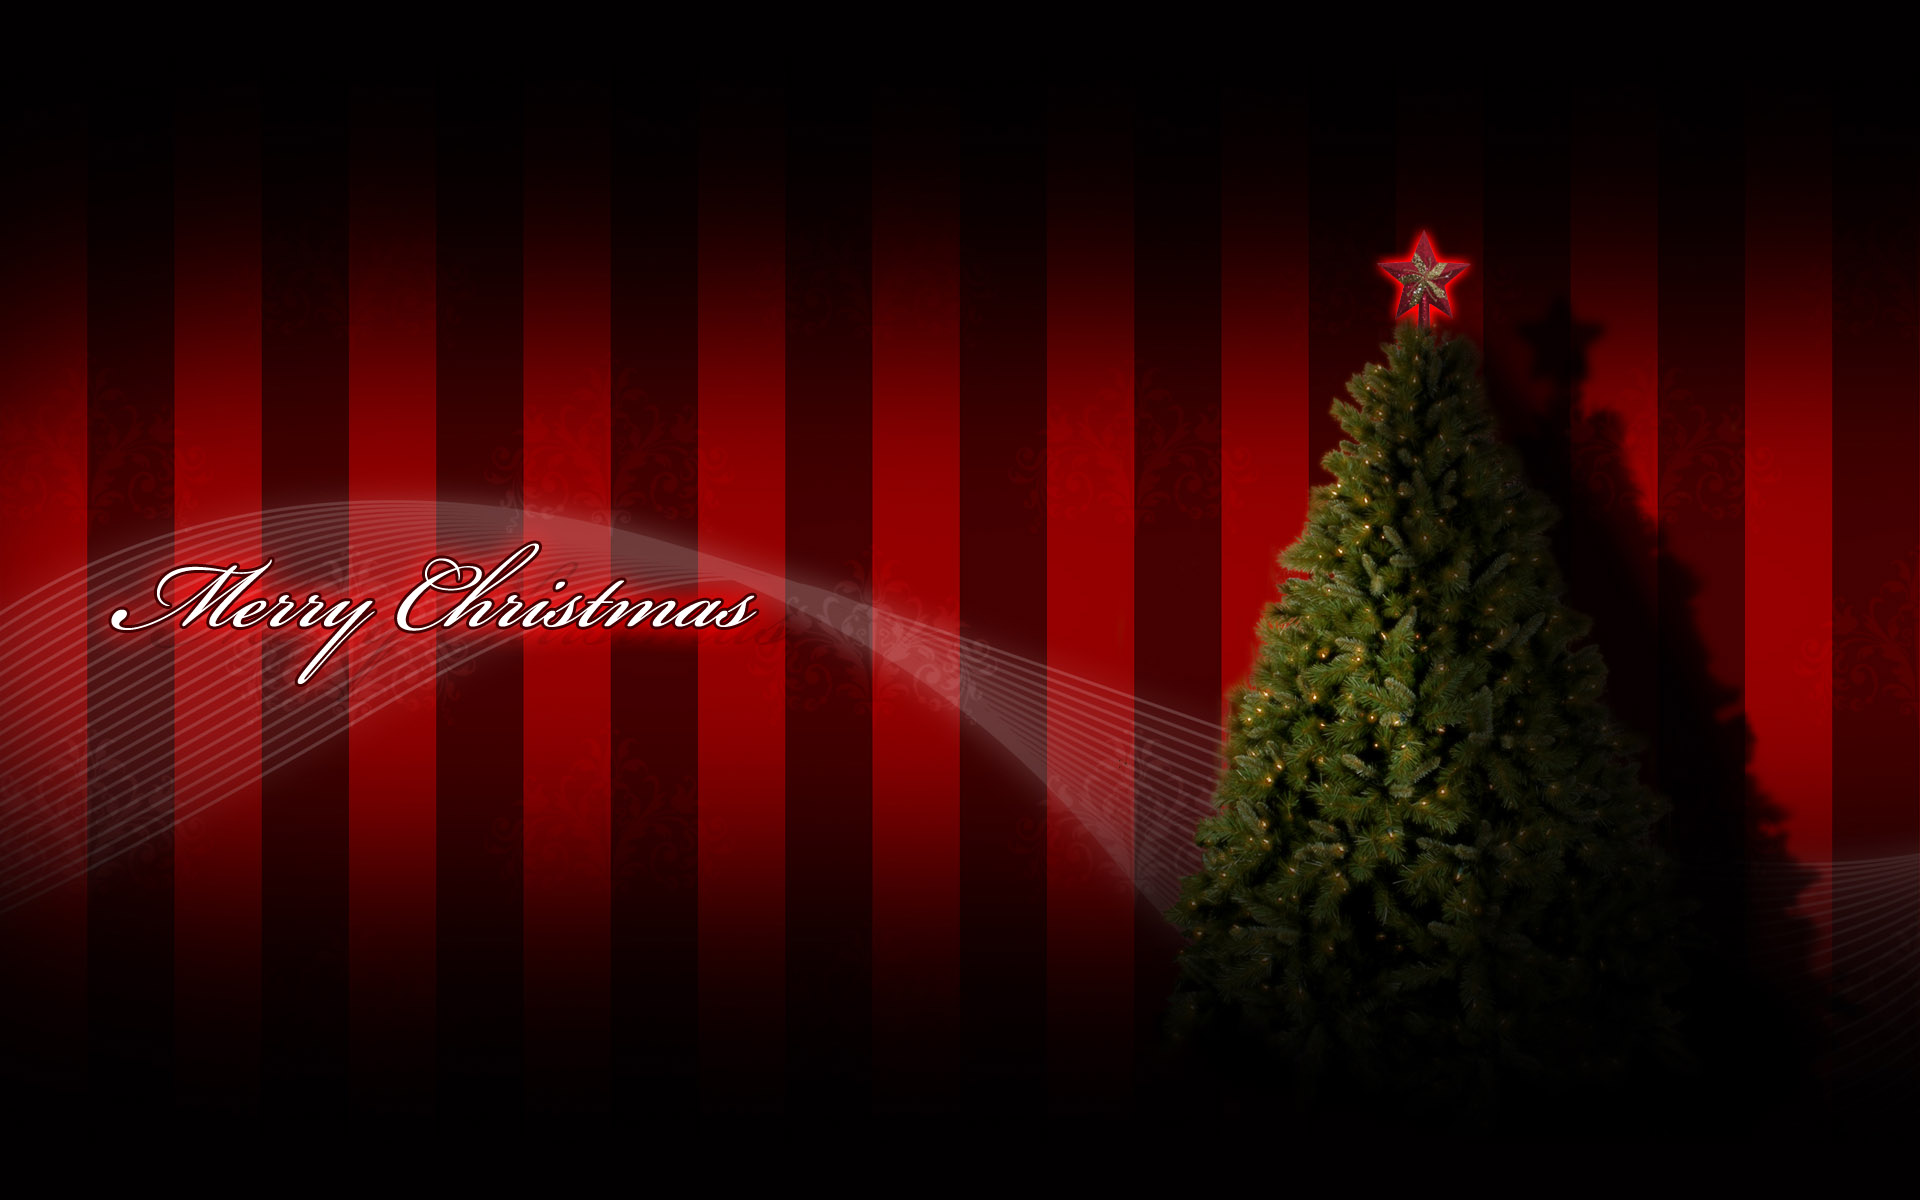 Christmas wallpaper high definition 27022